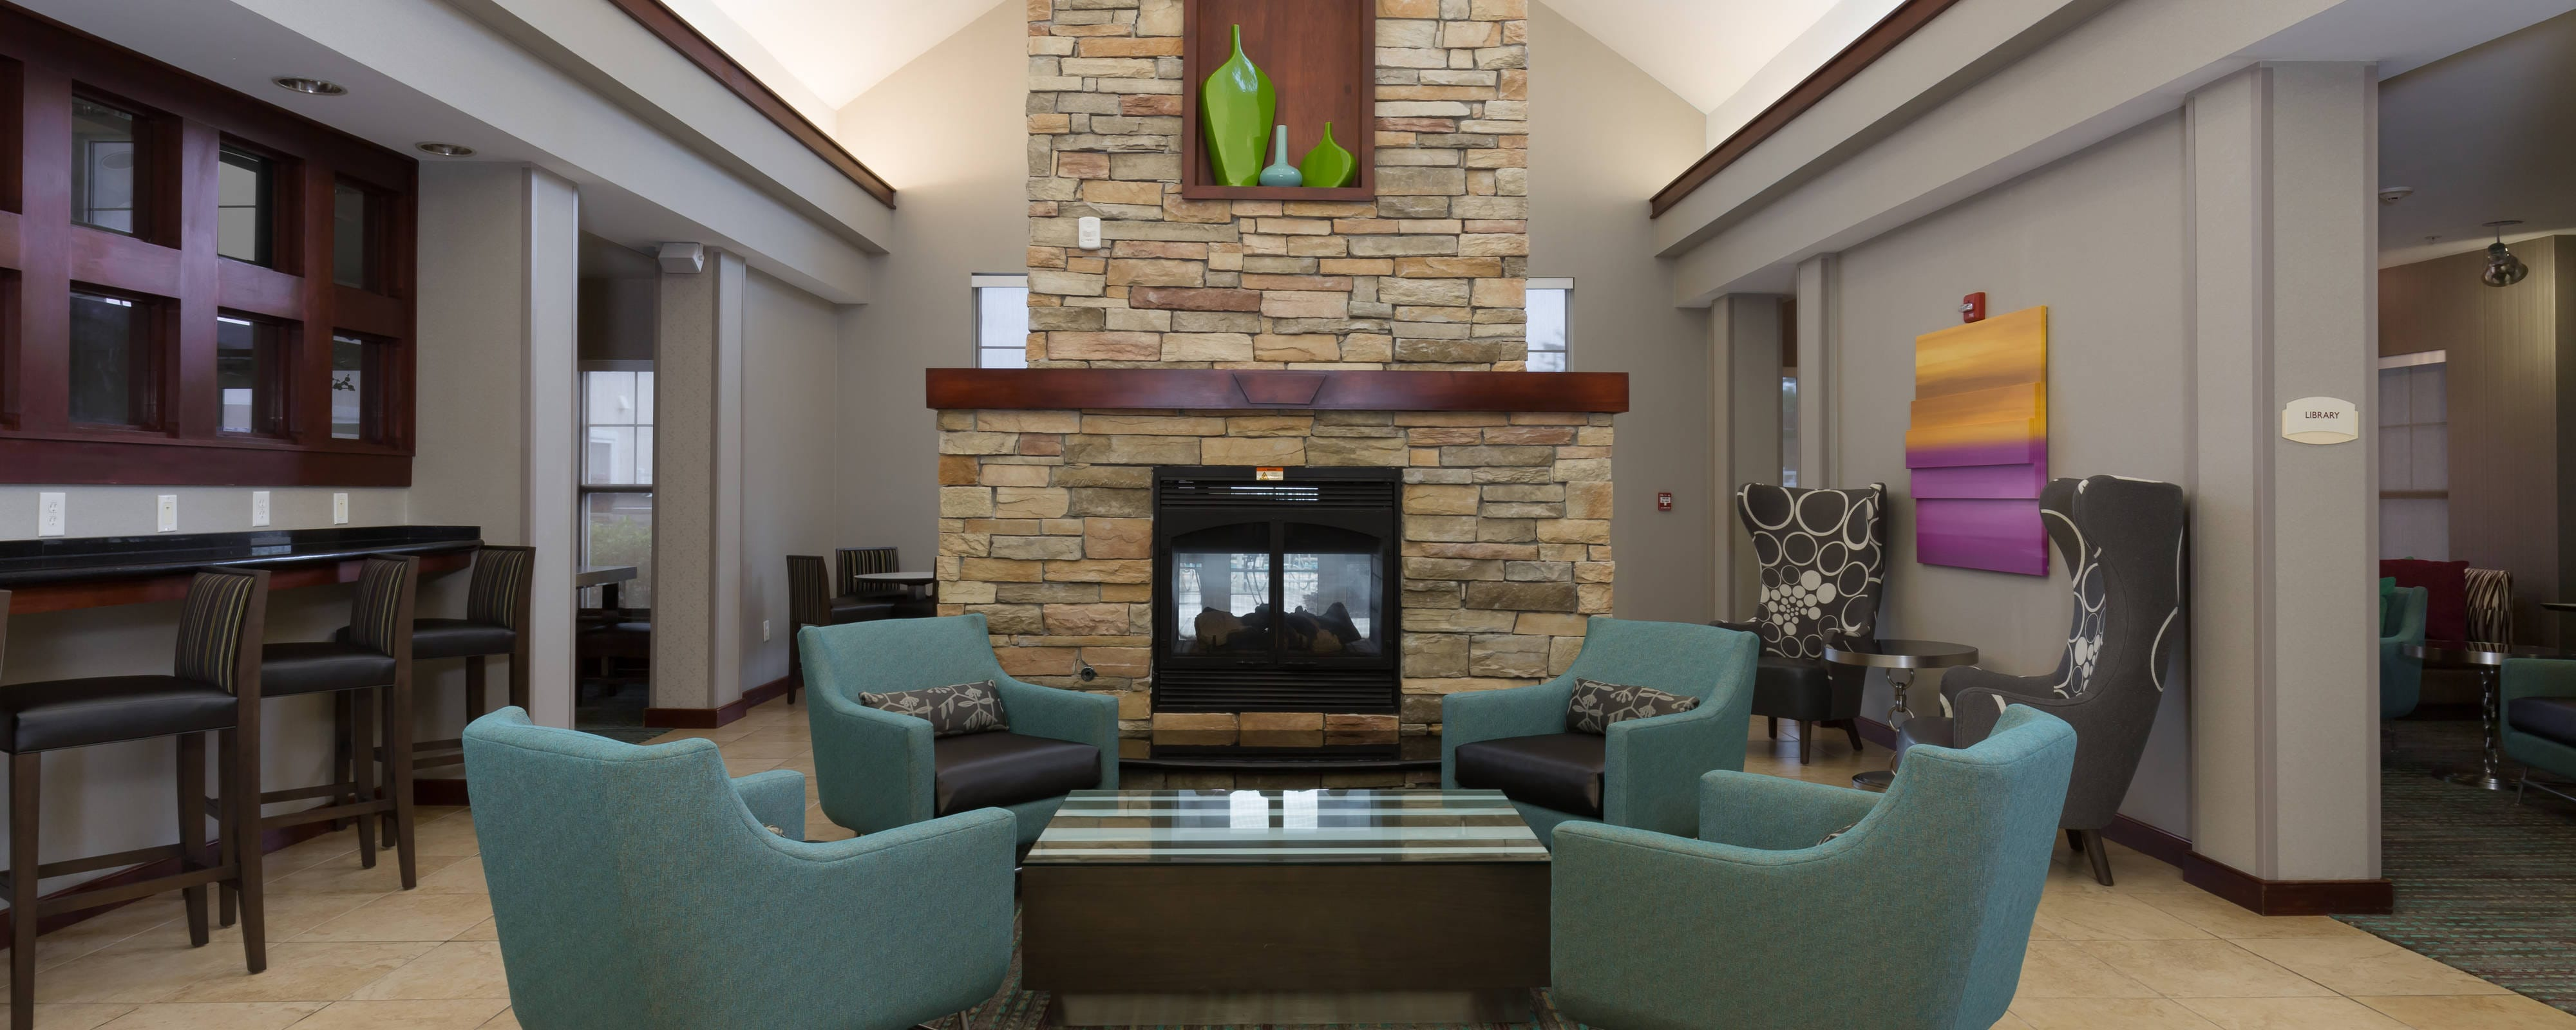 Extended Stay Hotels In Baton Rouge Louisiana Residence Inn Baton Rouge Towne Center